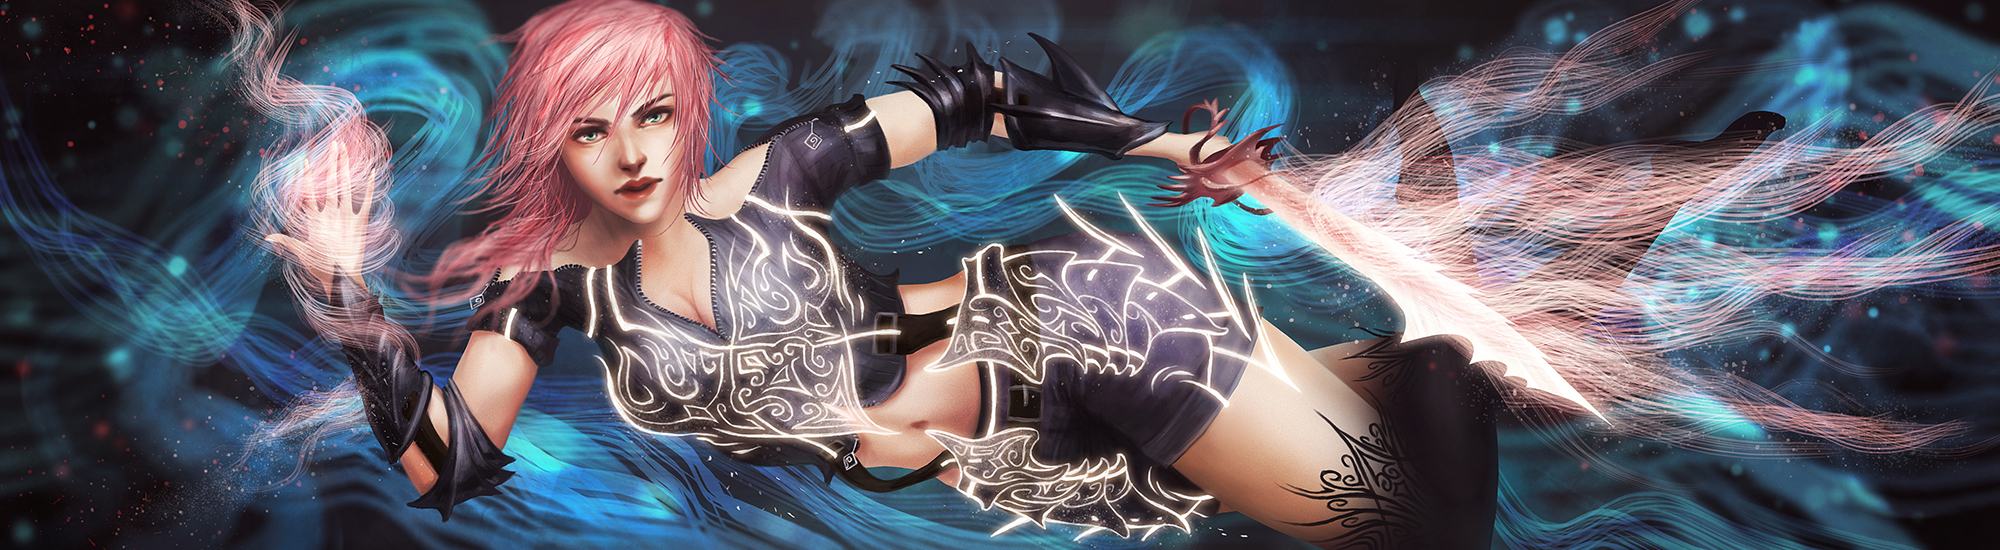 Lightning by vesssel